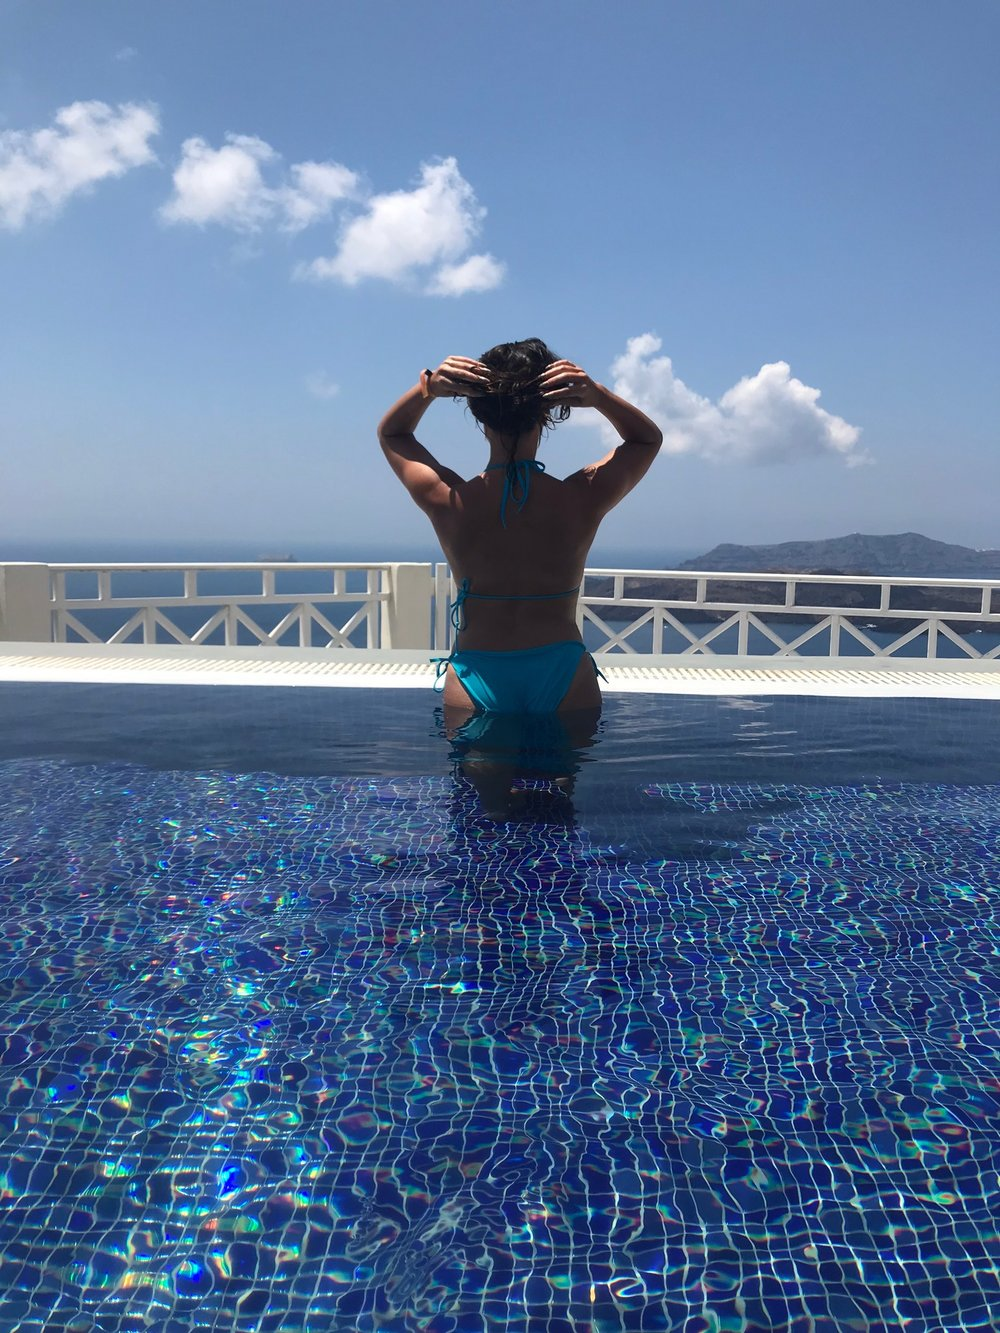 These infinity pools were everything...